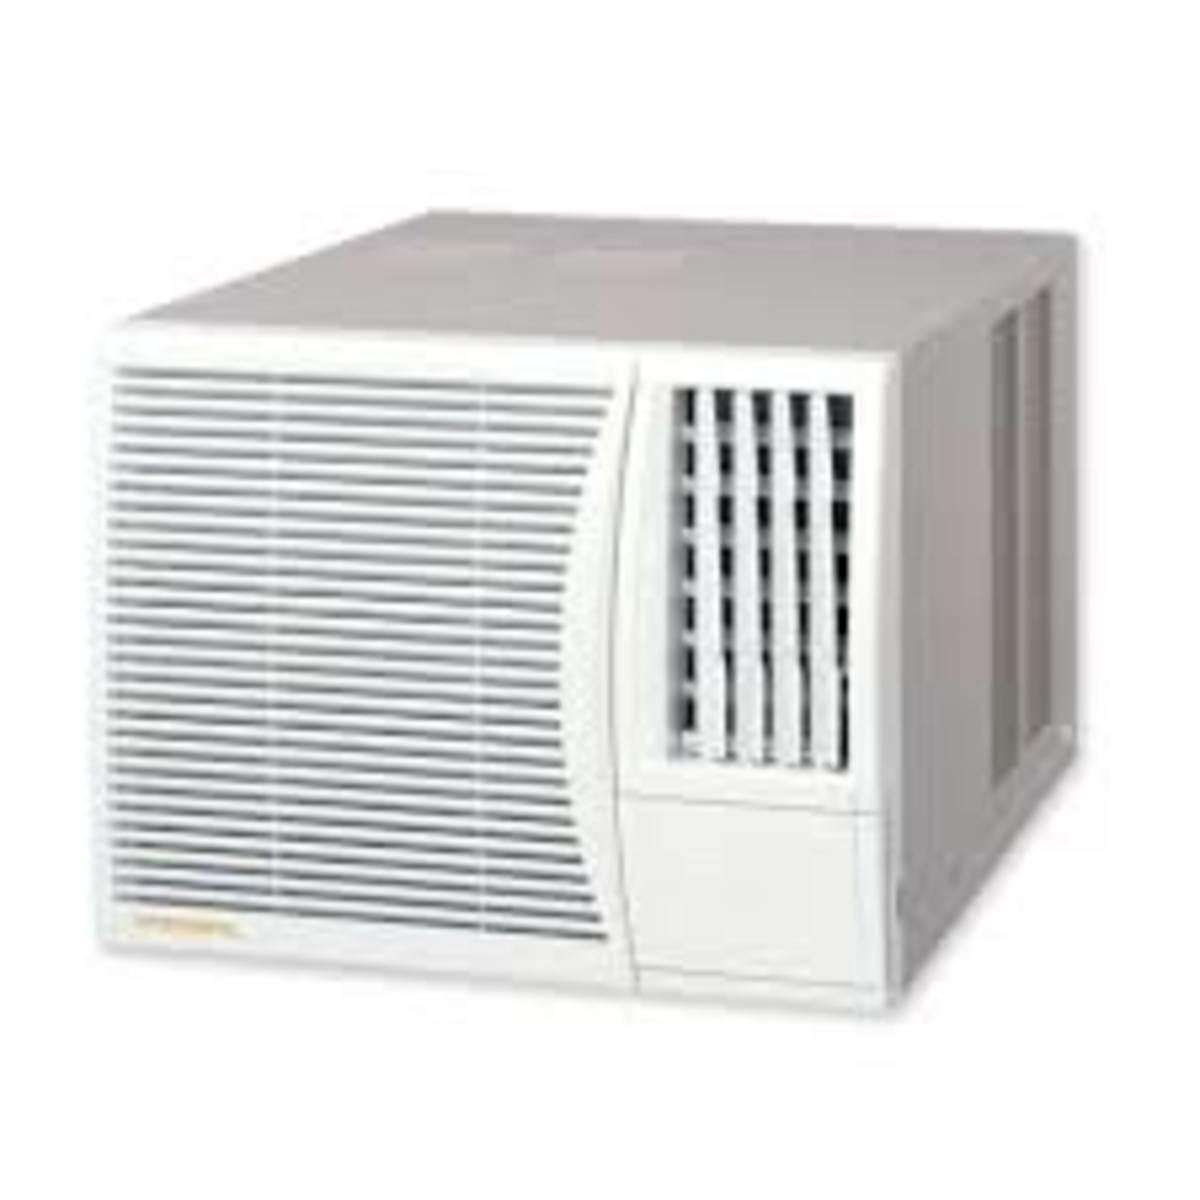 AFWA18FAT 2.0HP Window type Air Conditioner (3-year Warranty)